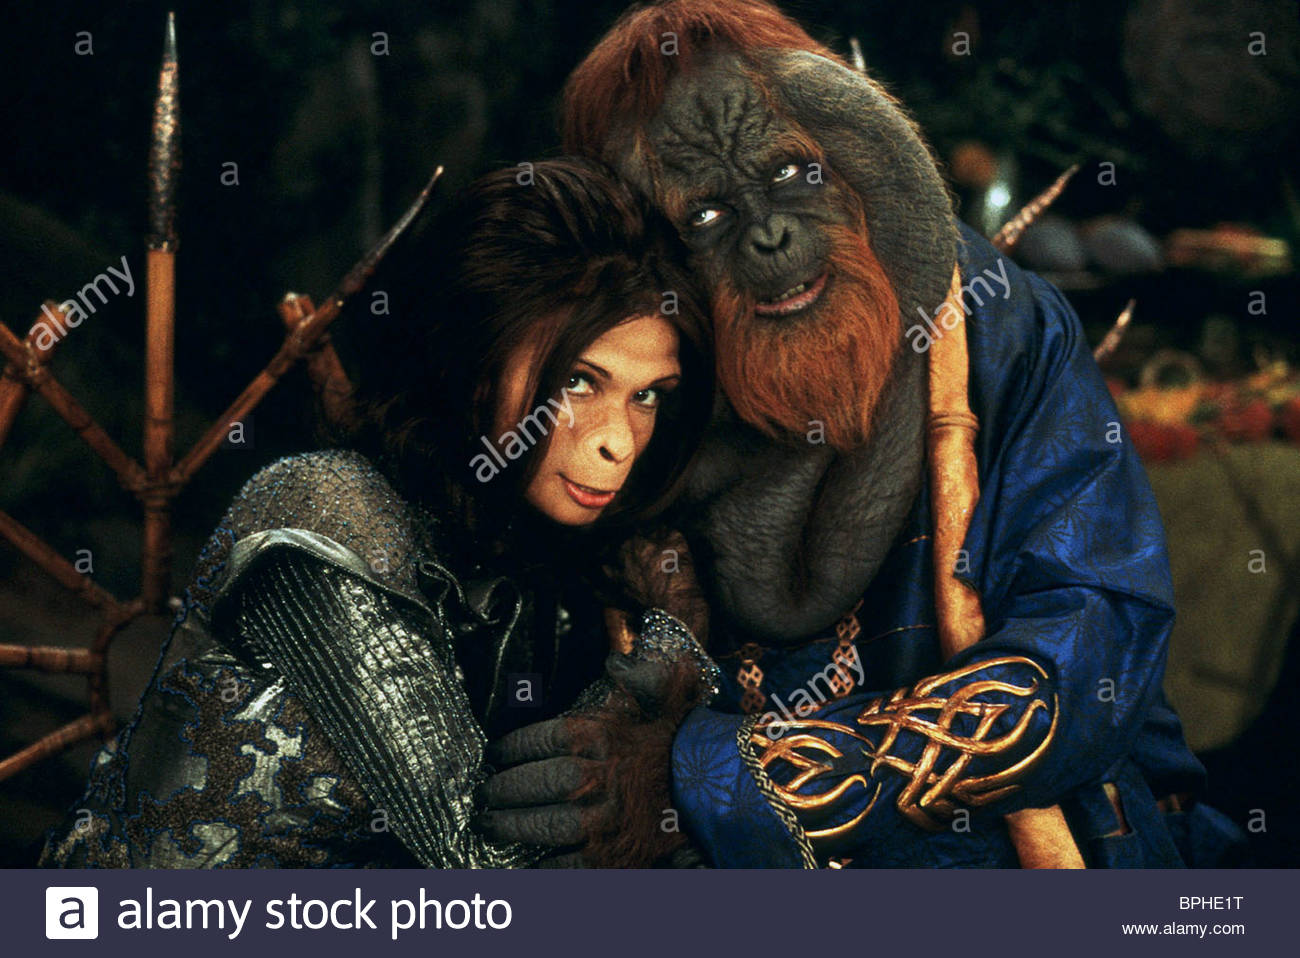 Planet Of The Apes 2001 Wallpapers Movie Hq Planet Of The Apes 2001 Pictures 4k Wallpapers 2019